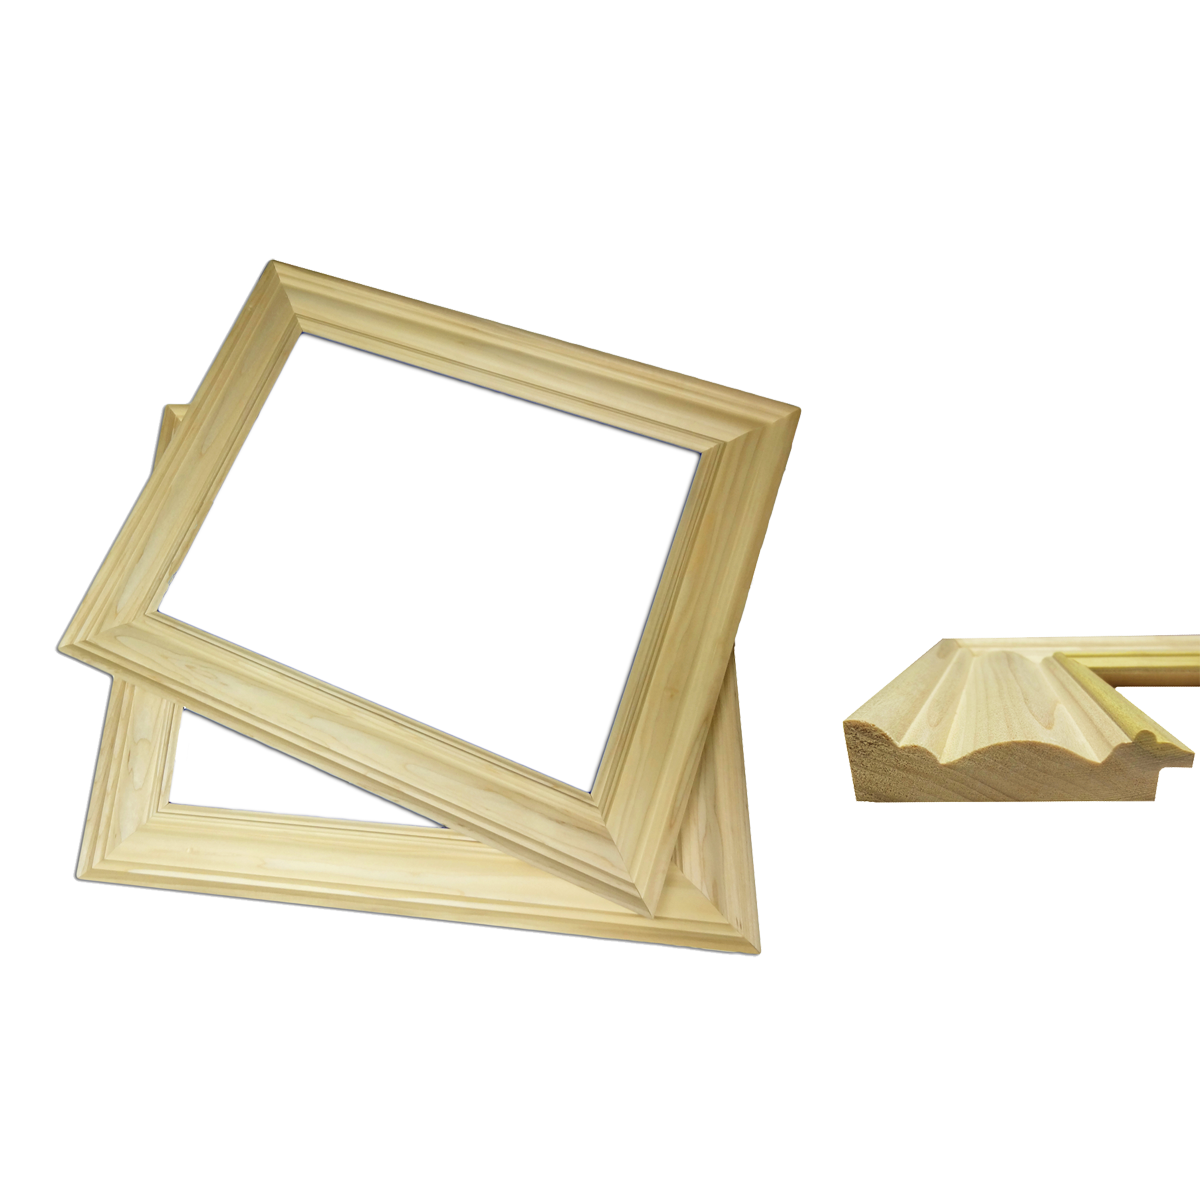 Buy Picture Frames Buy Unfinished Picture Frames Bulk Unfinished Wood